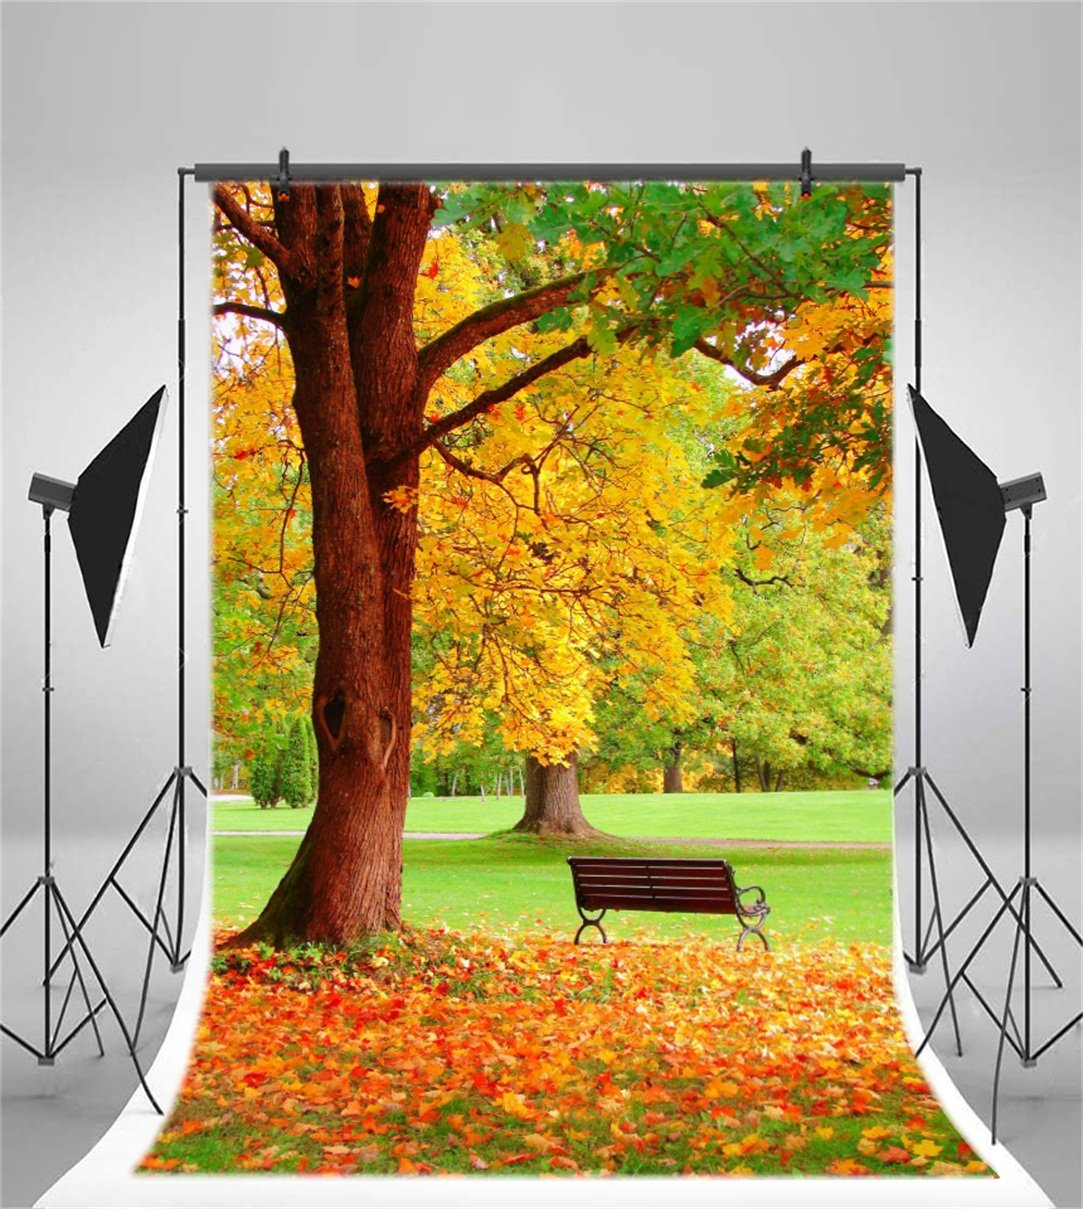 Csfoto 4x6ft Background For Autumn Park Landscape Photography Backdrop Yellow Fallen Leaves Wooden Bench Nature Scenery Walk Picnic Leisurely Holiday